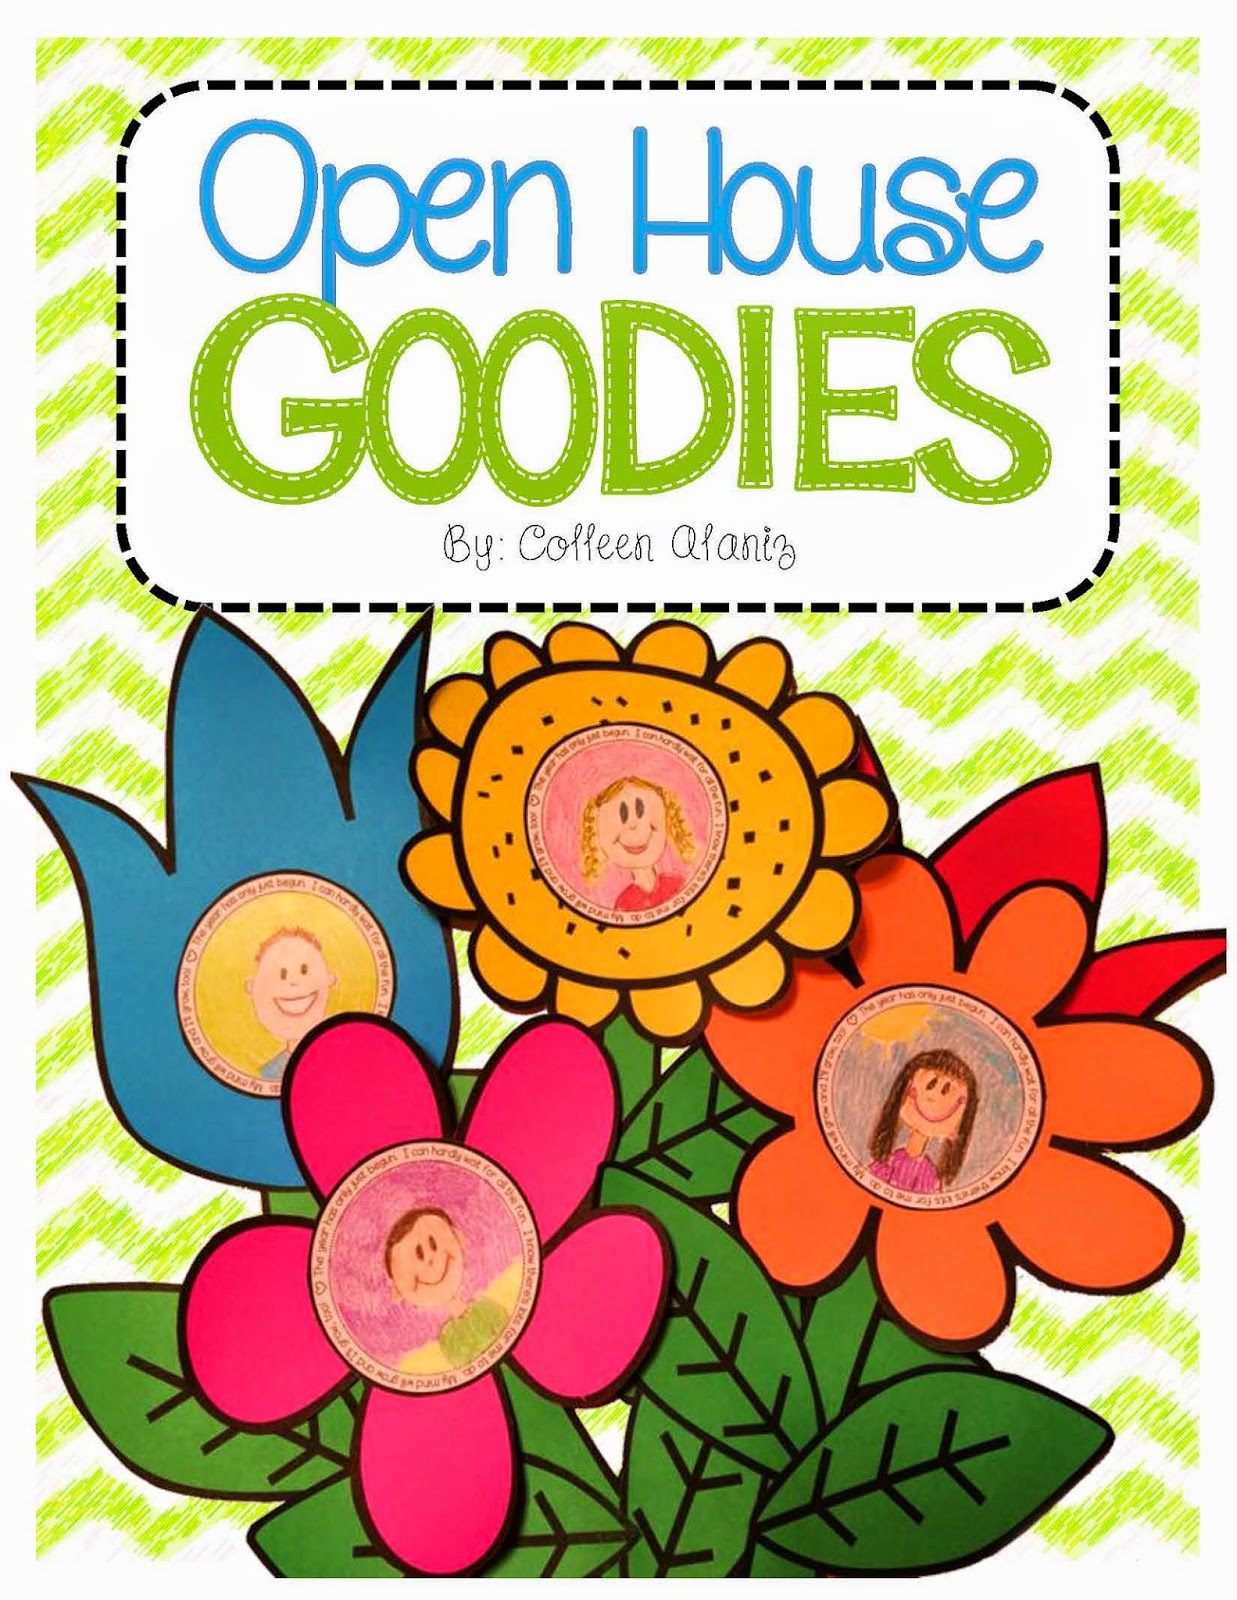 http://www.teacherspayteachers.com/Product/Open-House-Goodies-1324774